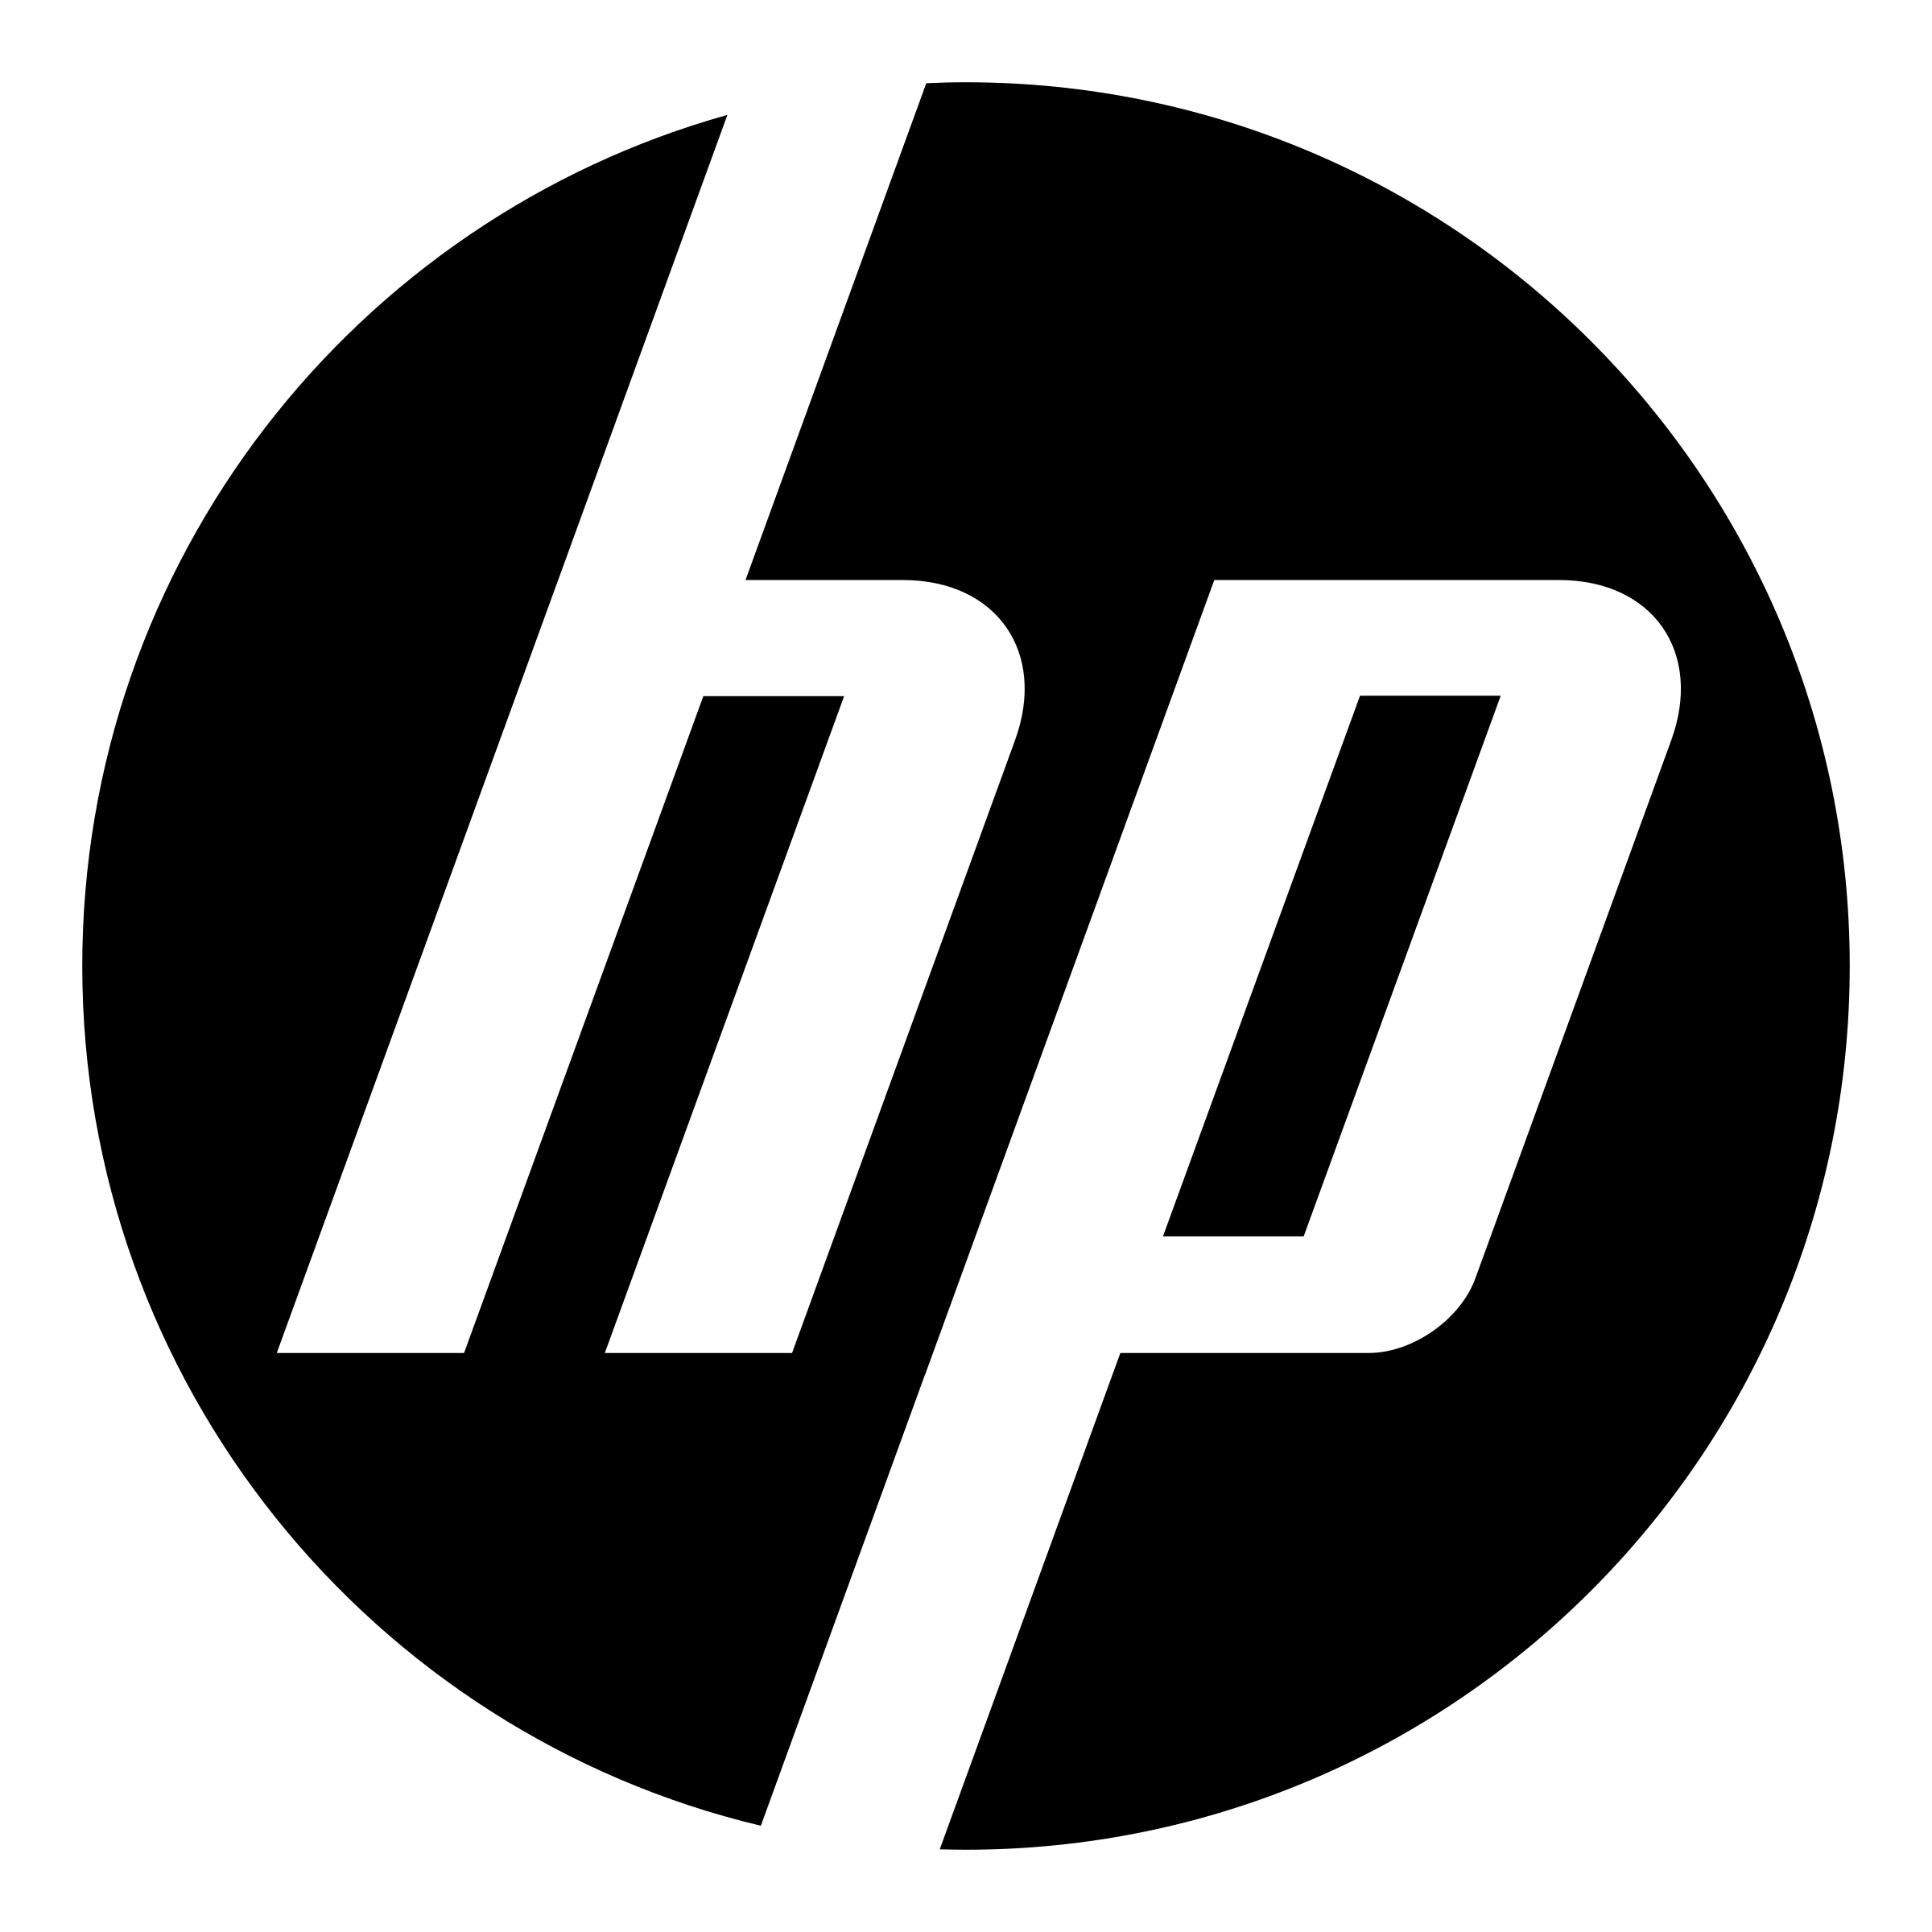 HP Logo - HP Logo PNG Transparent & SVG Vector - Freebie Supply